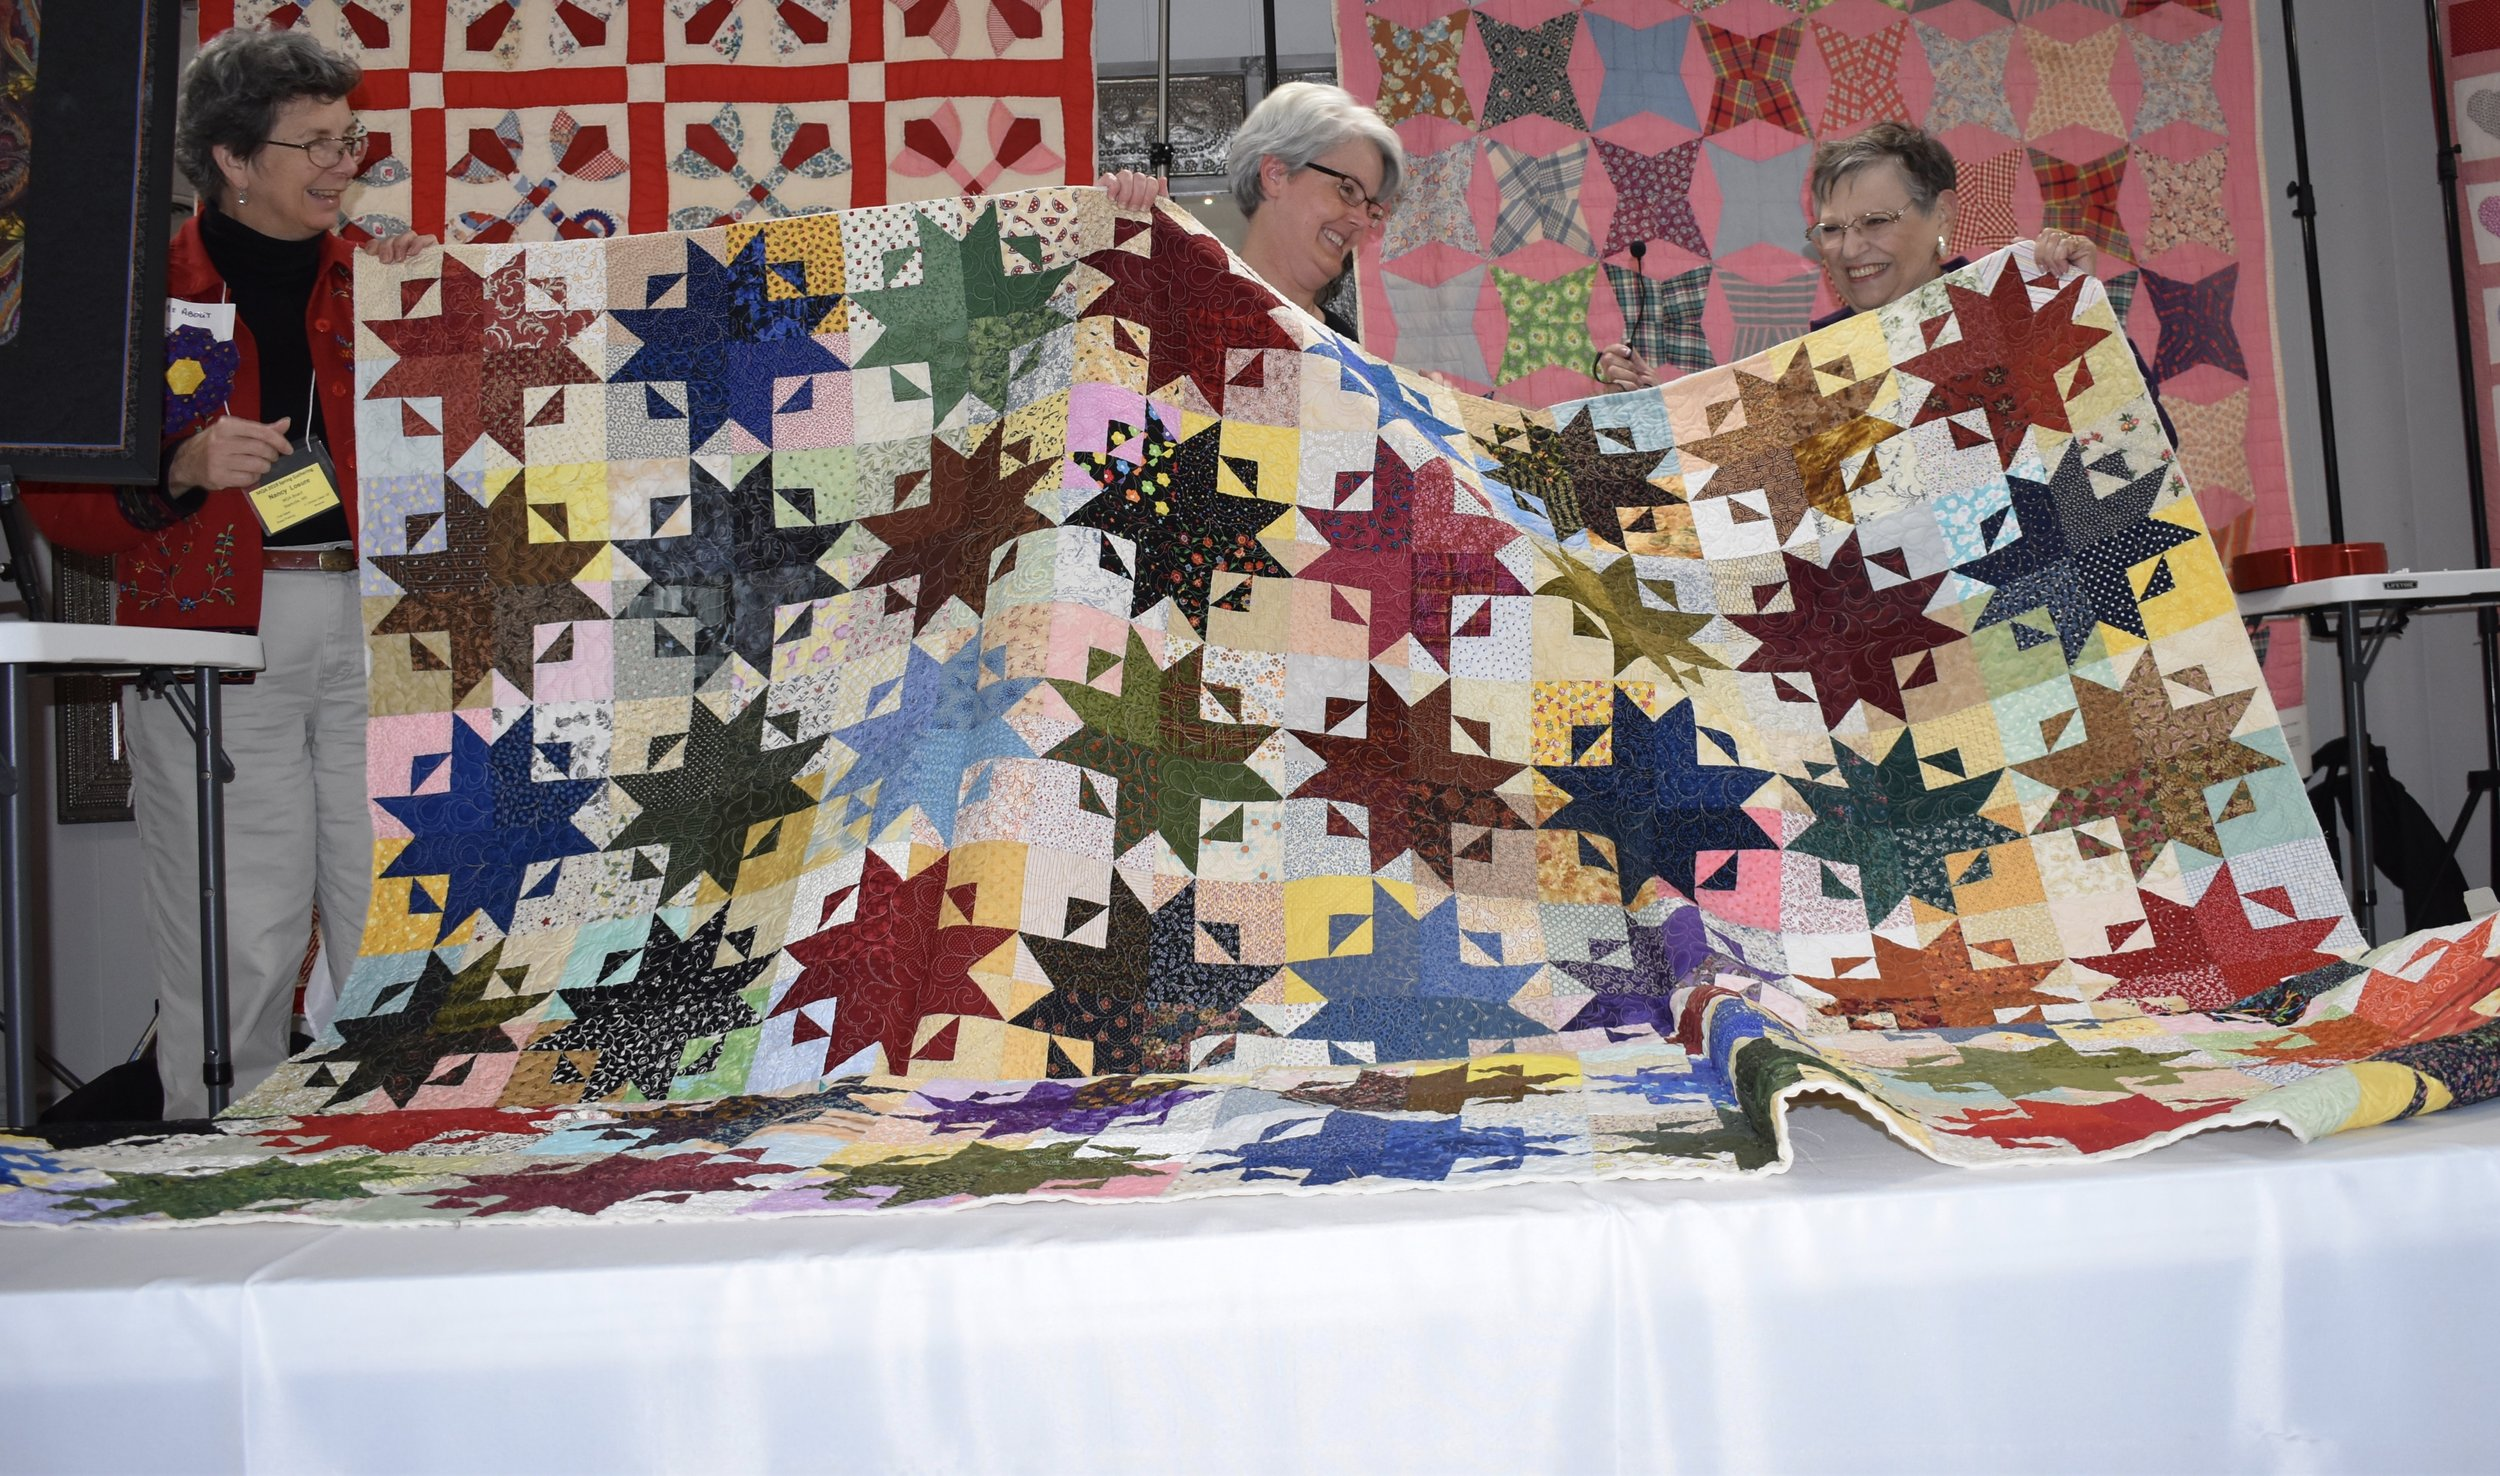 - Charlotte Taylor showed her Star Storm quilt made from the Northwind block.